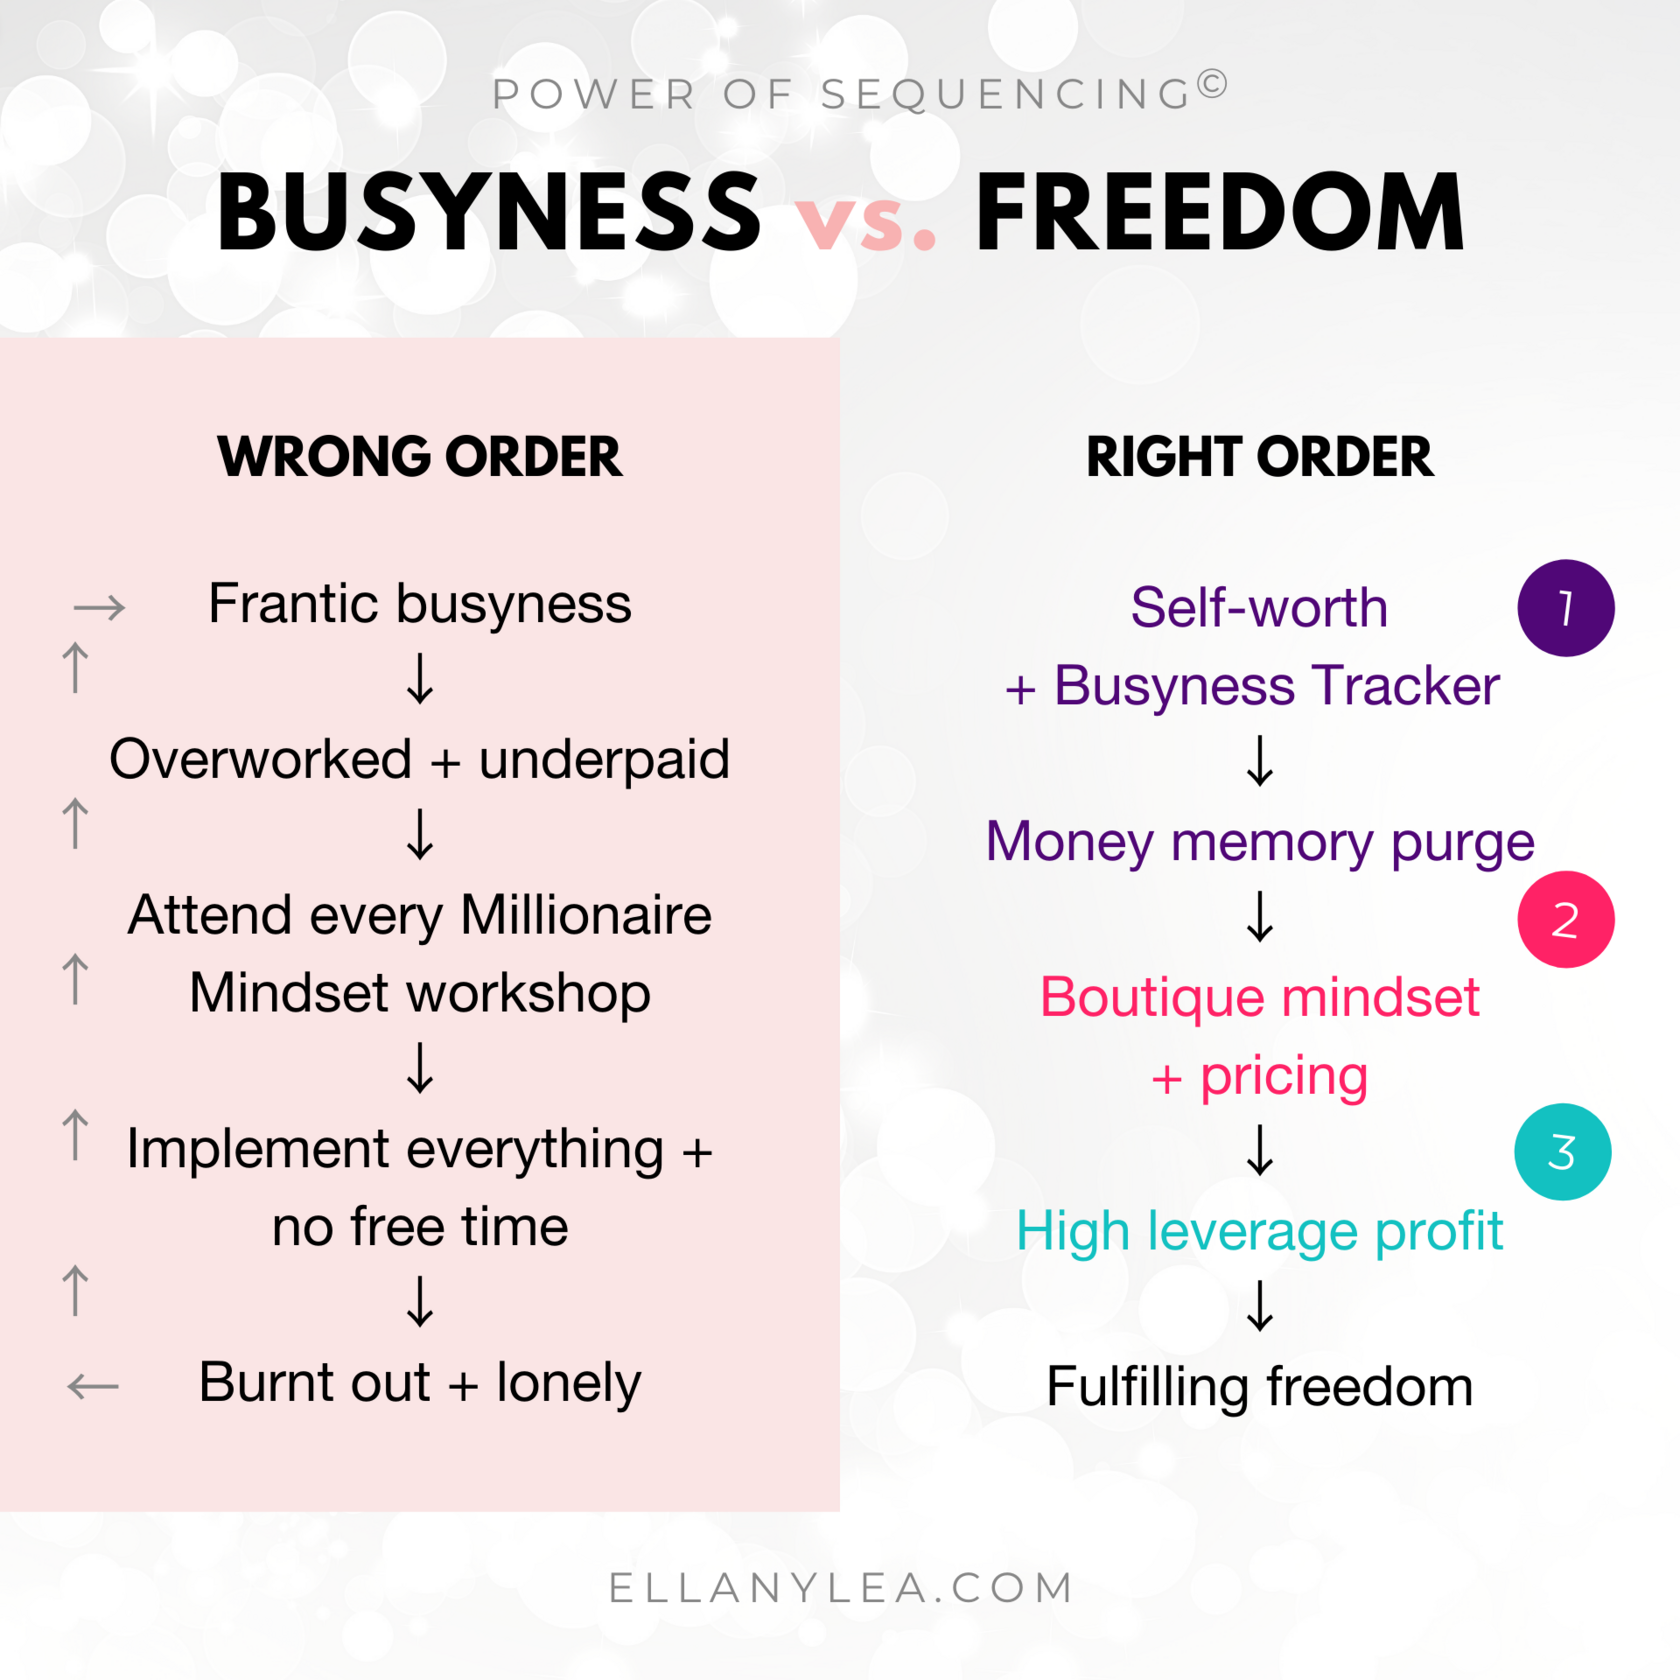 Power of Sequencing - busyness vs freedom